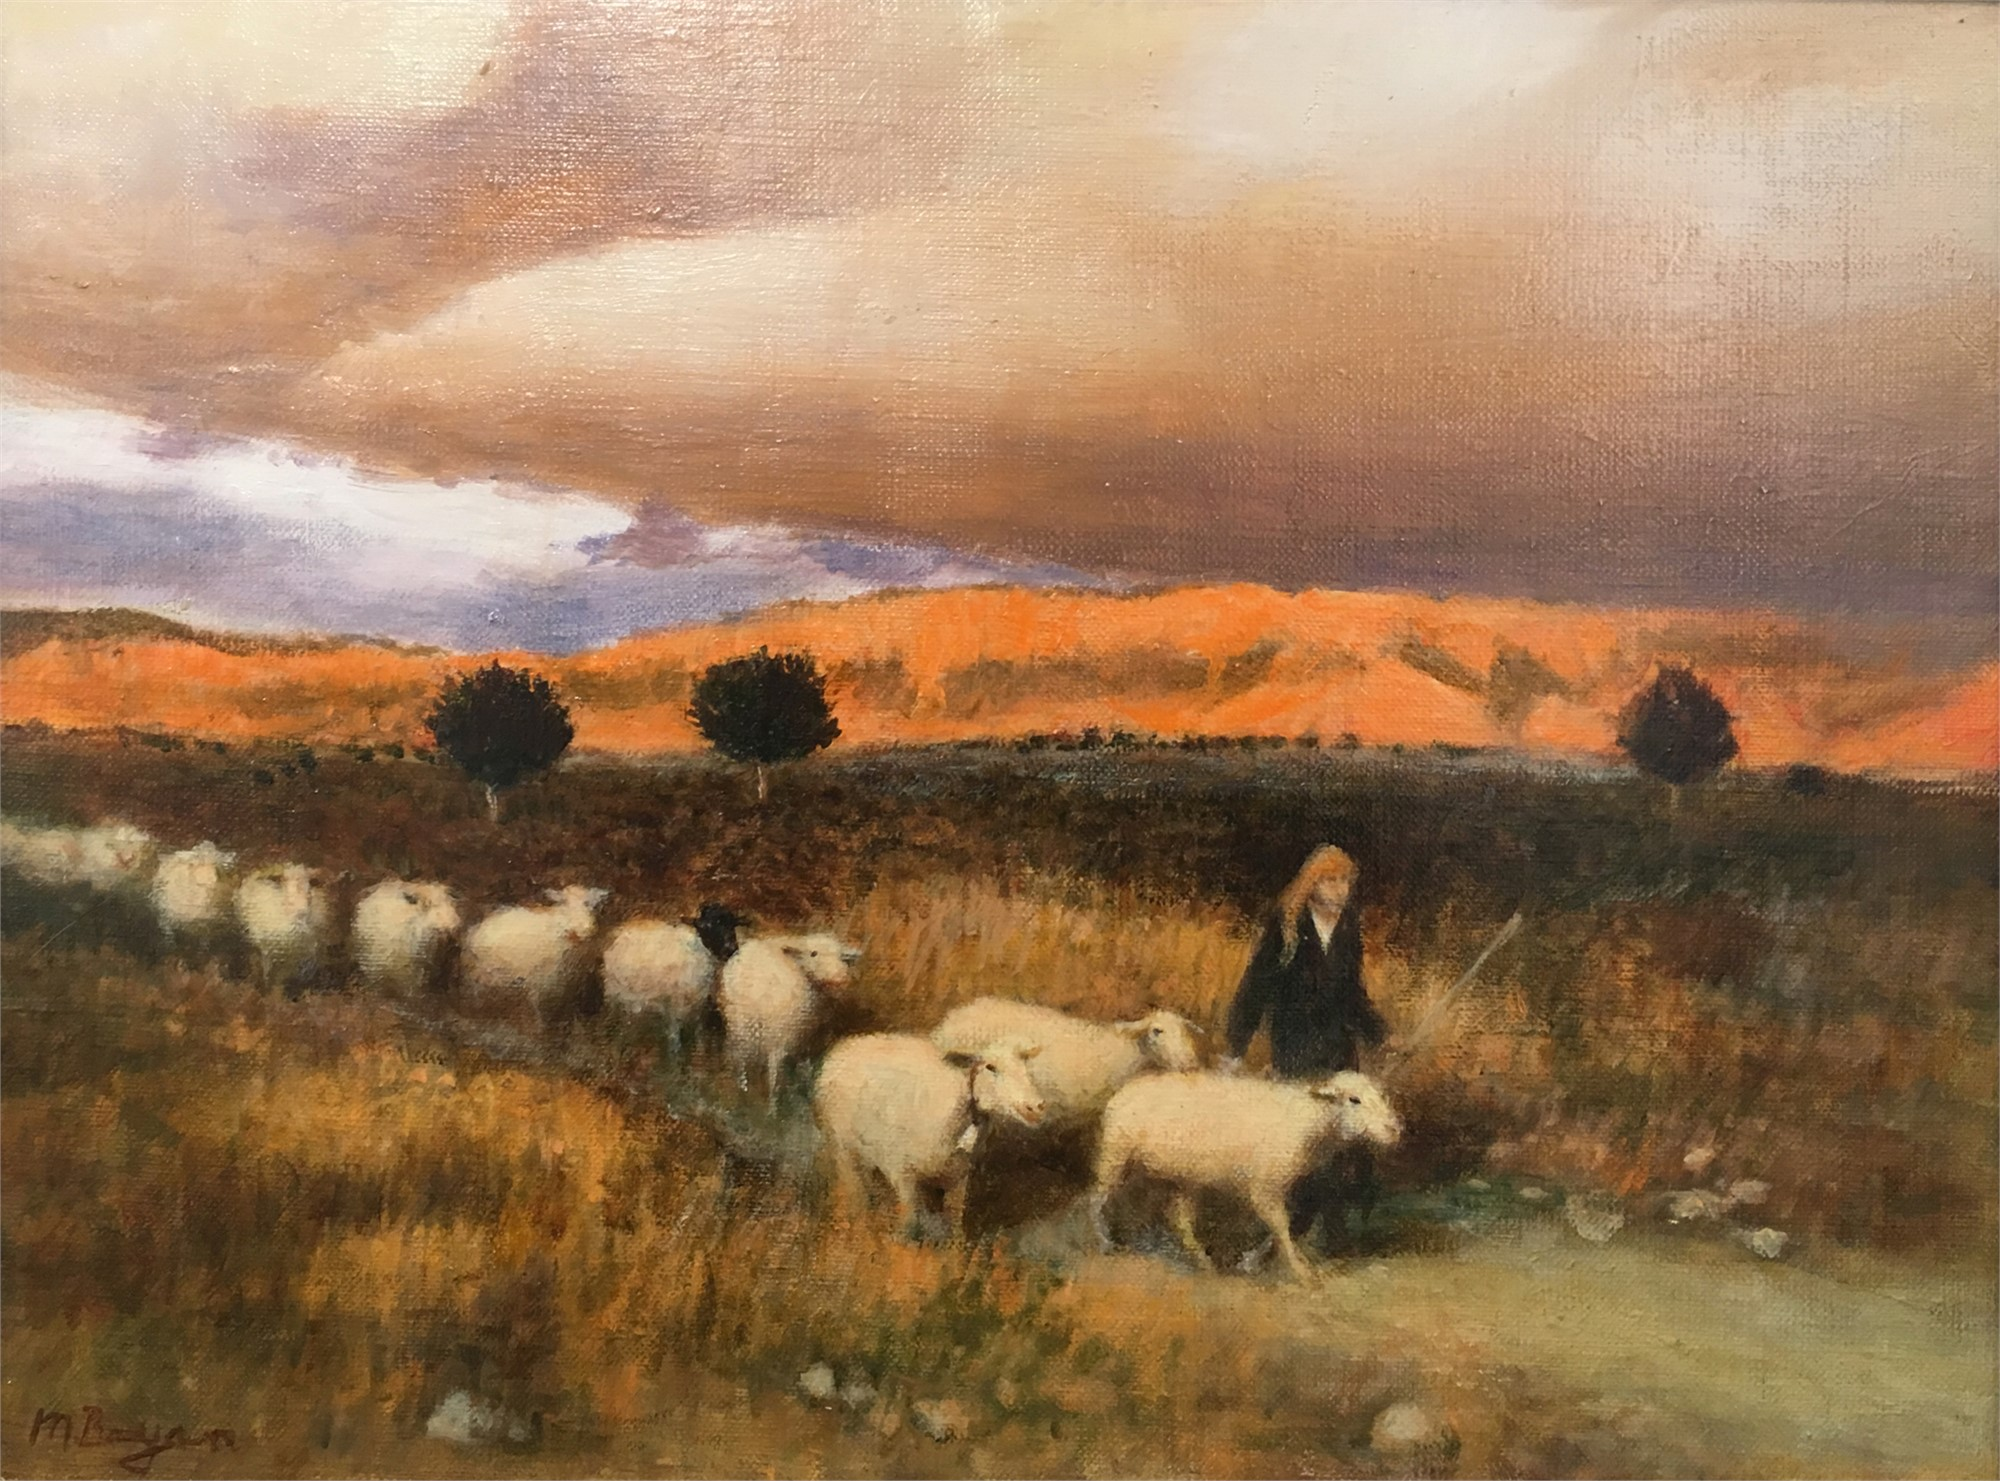 On the Way Home - Stormy Sunset by Malcolm Bryan